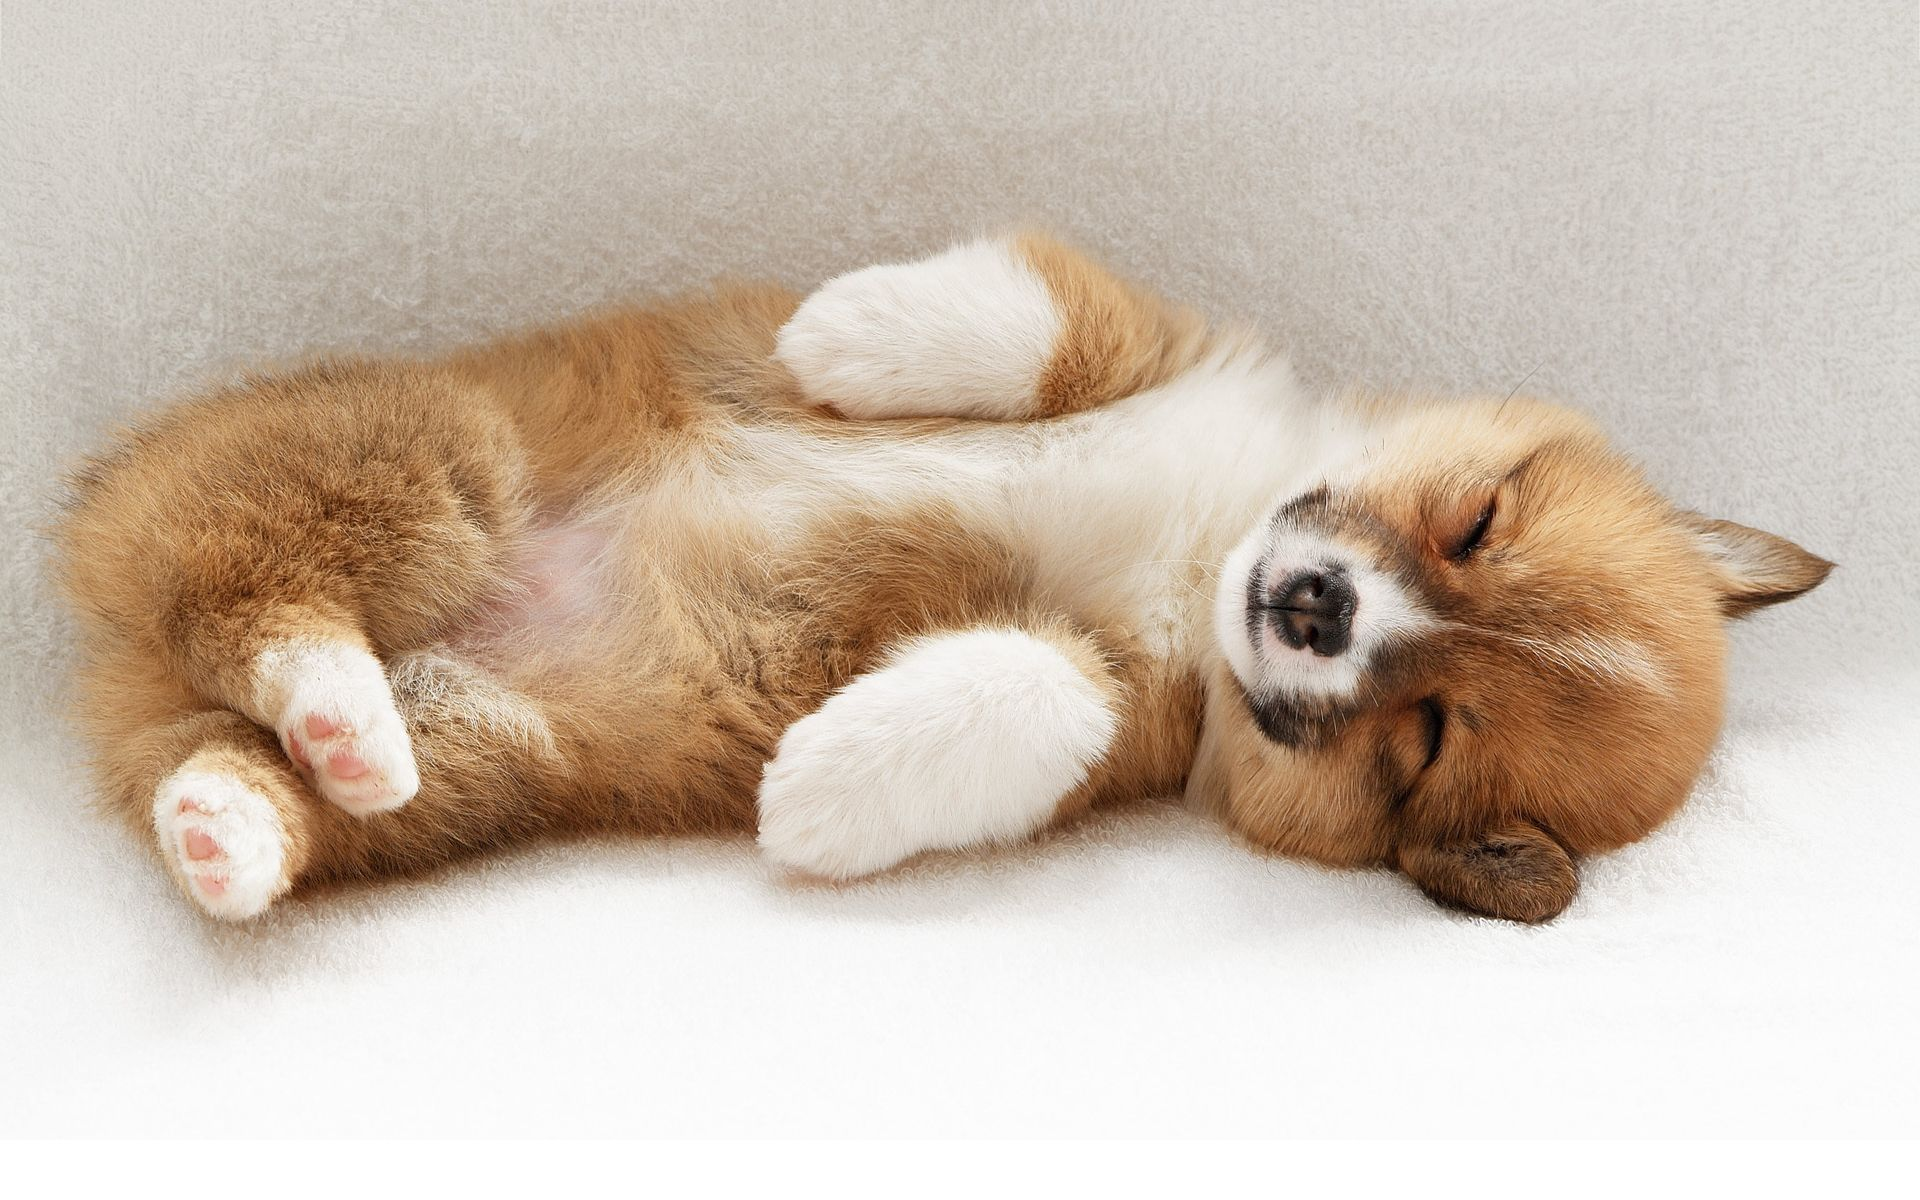 cute dog pictures Cute puppy sleep Wallpapers Pictures Photos 1920x1200